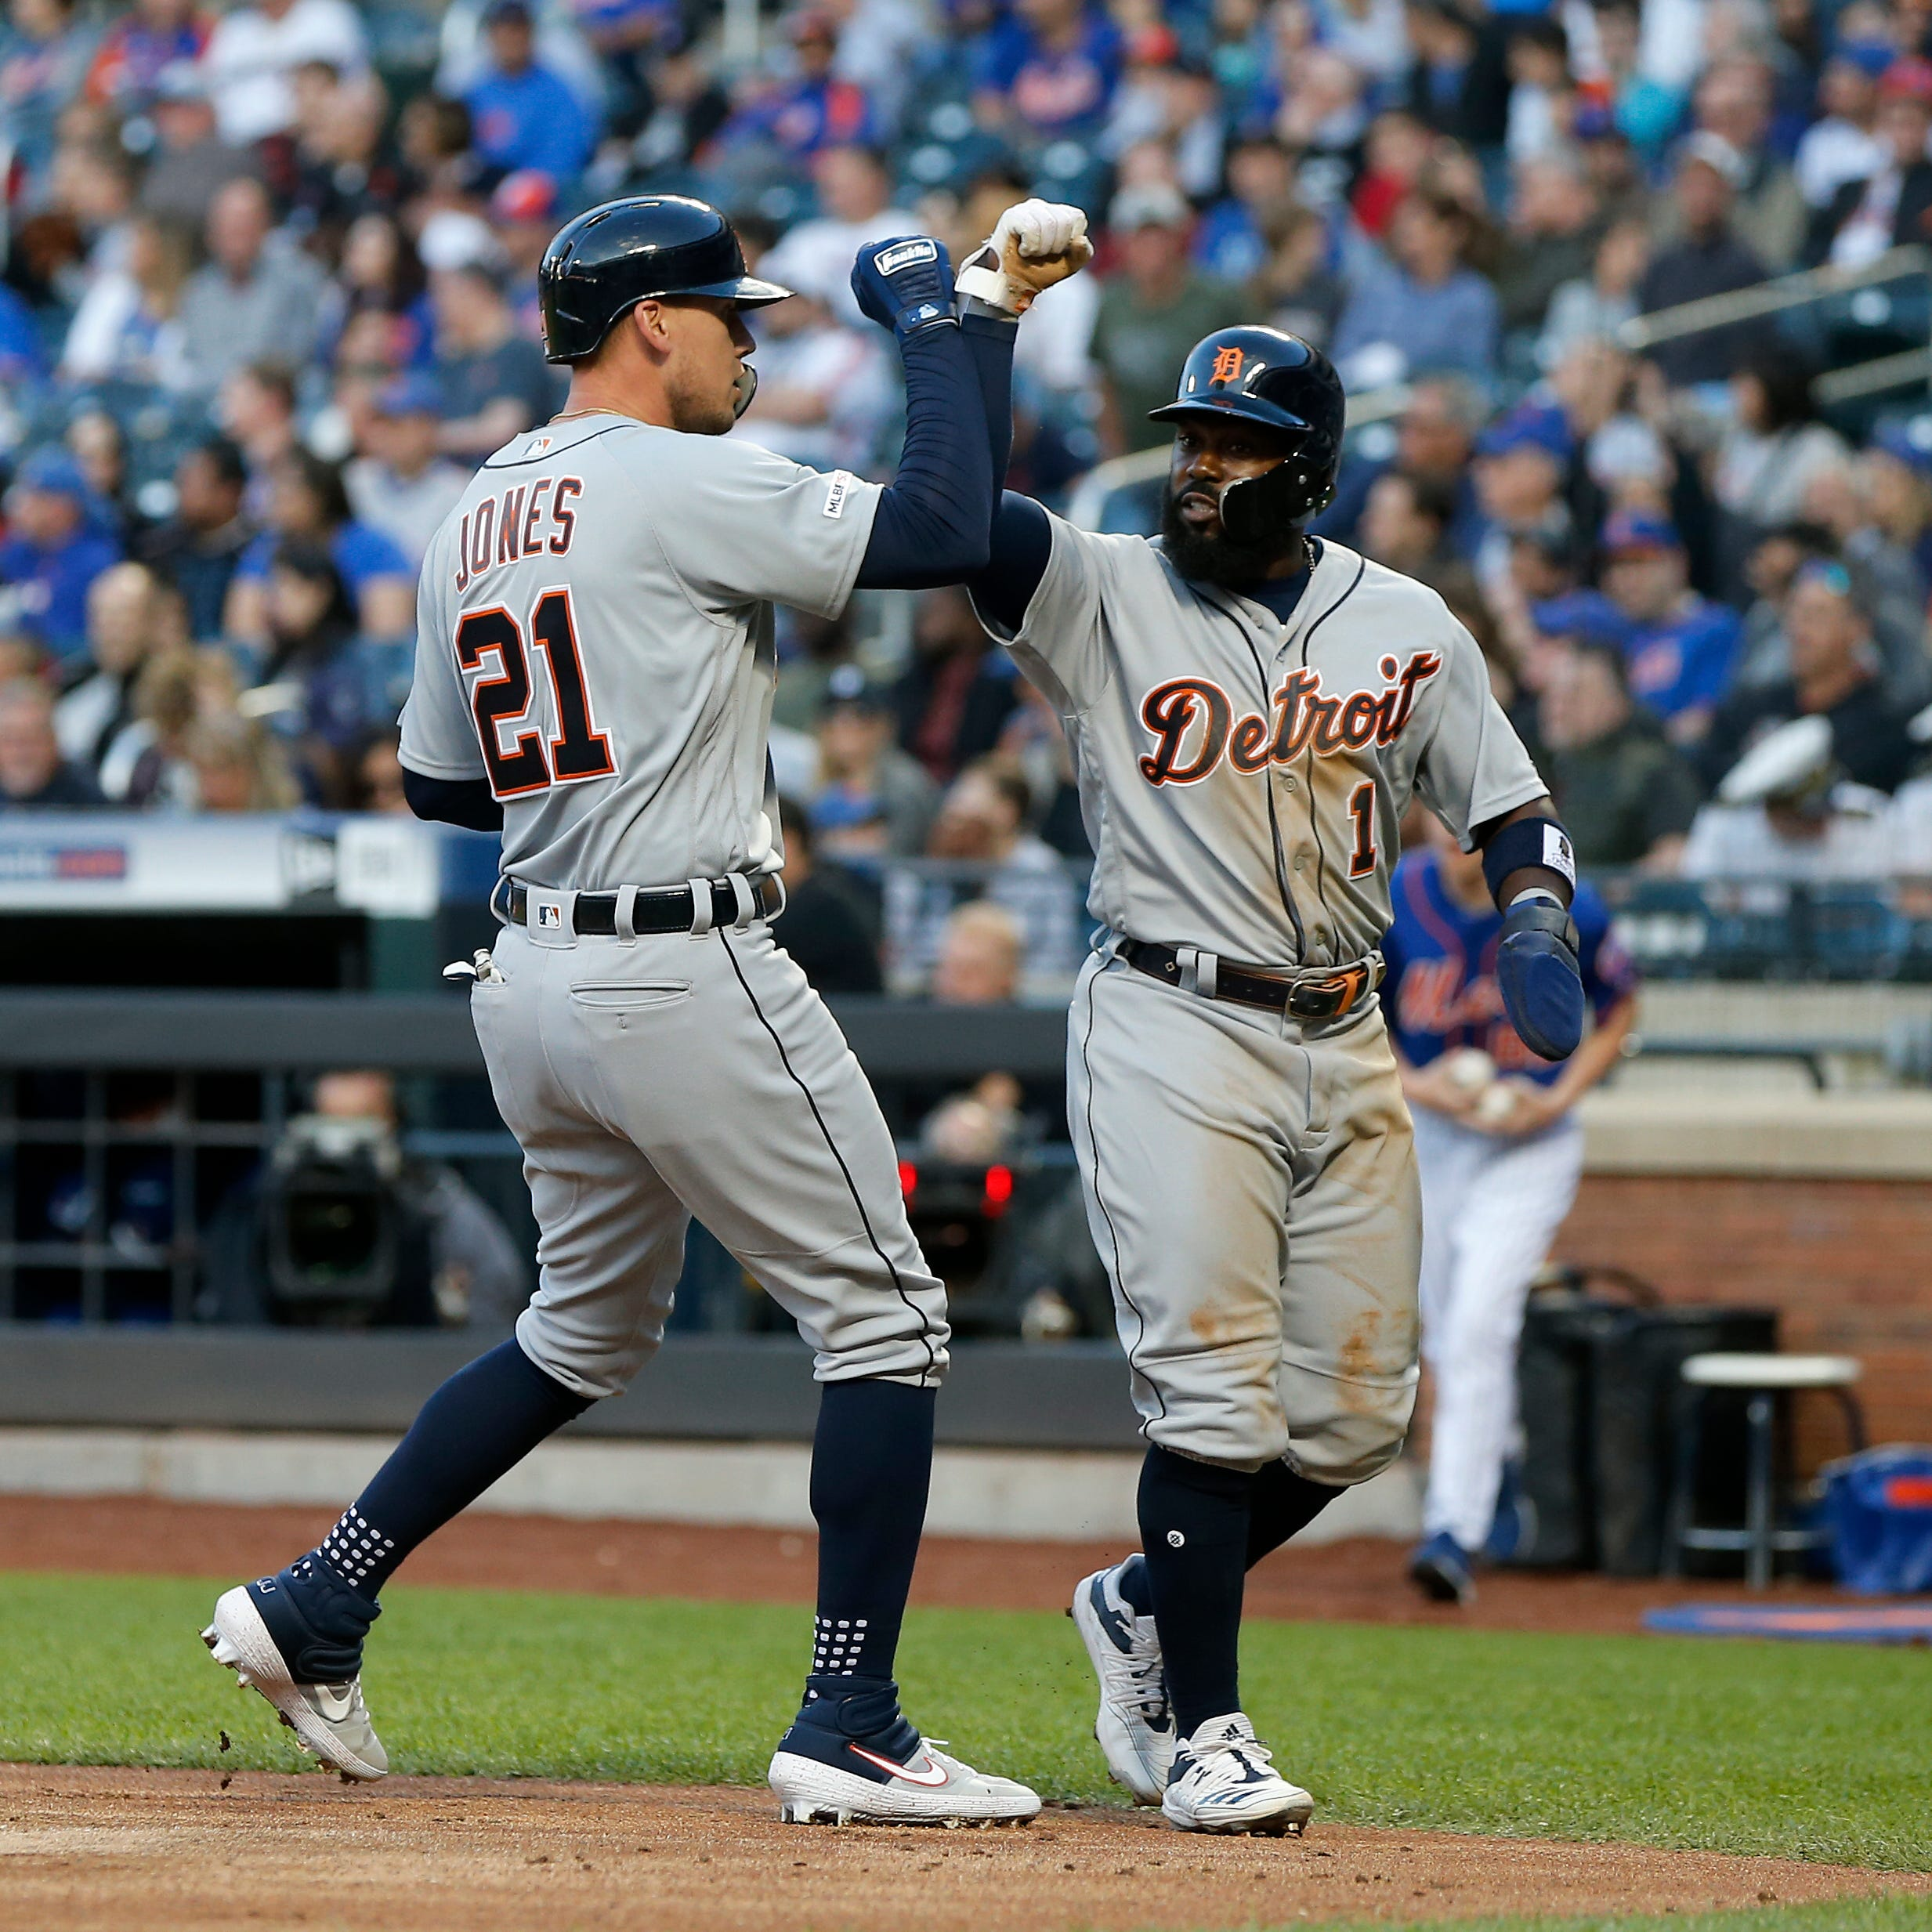 Detroit Tigers lineup vs. New York Mets: 3B Lugo hits second with no DH